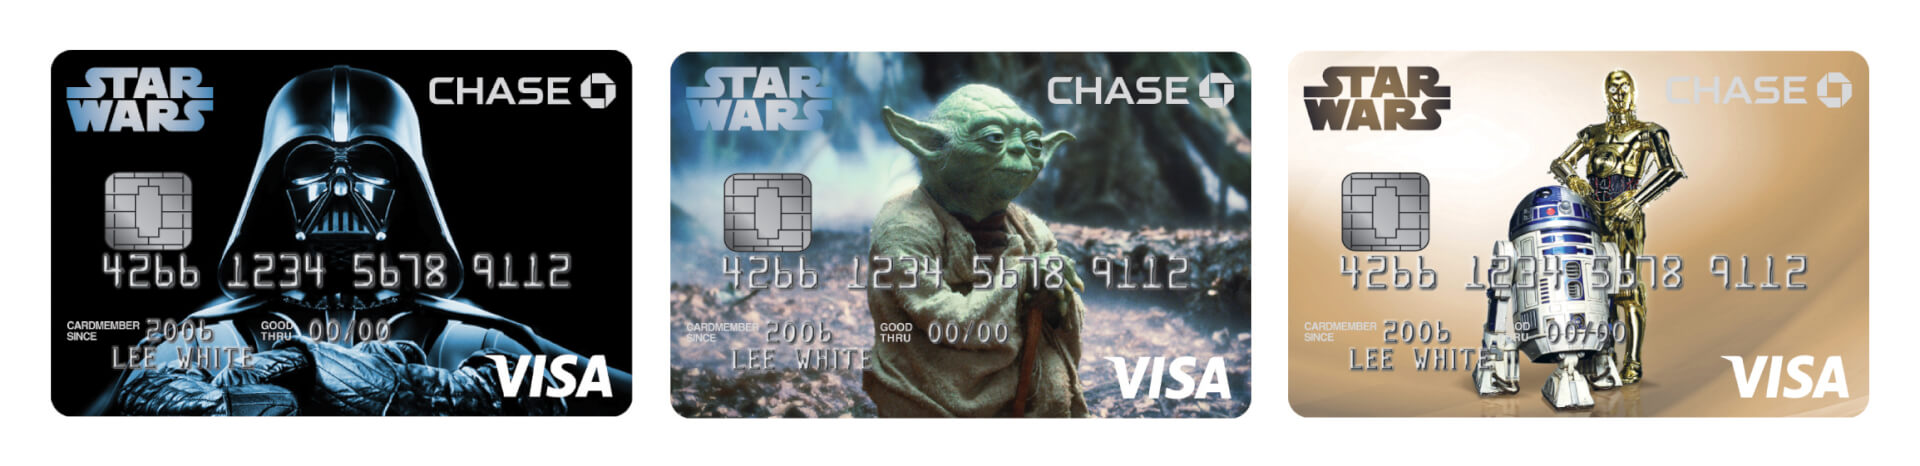 Exclusive darth vader meet and greet and star wars card designs a new exclusive star wars imperial meet n greet featuring the supreme commander of imperial forces darth vader will also be available for chase disney kristyandbryce Choice Image